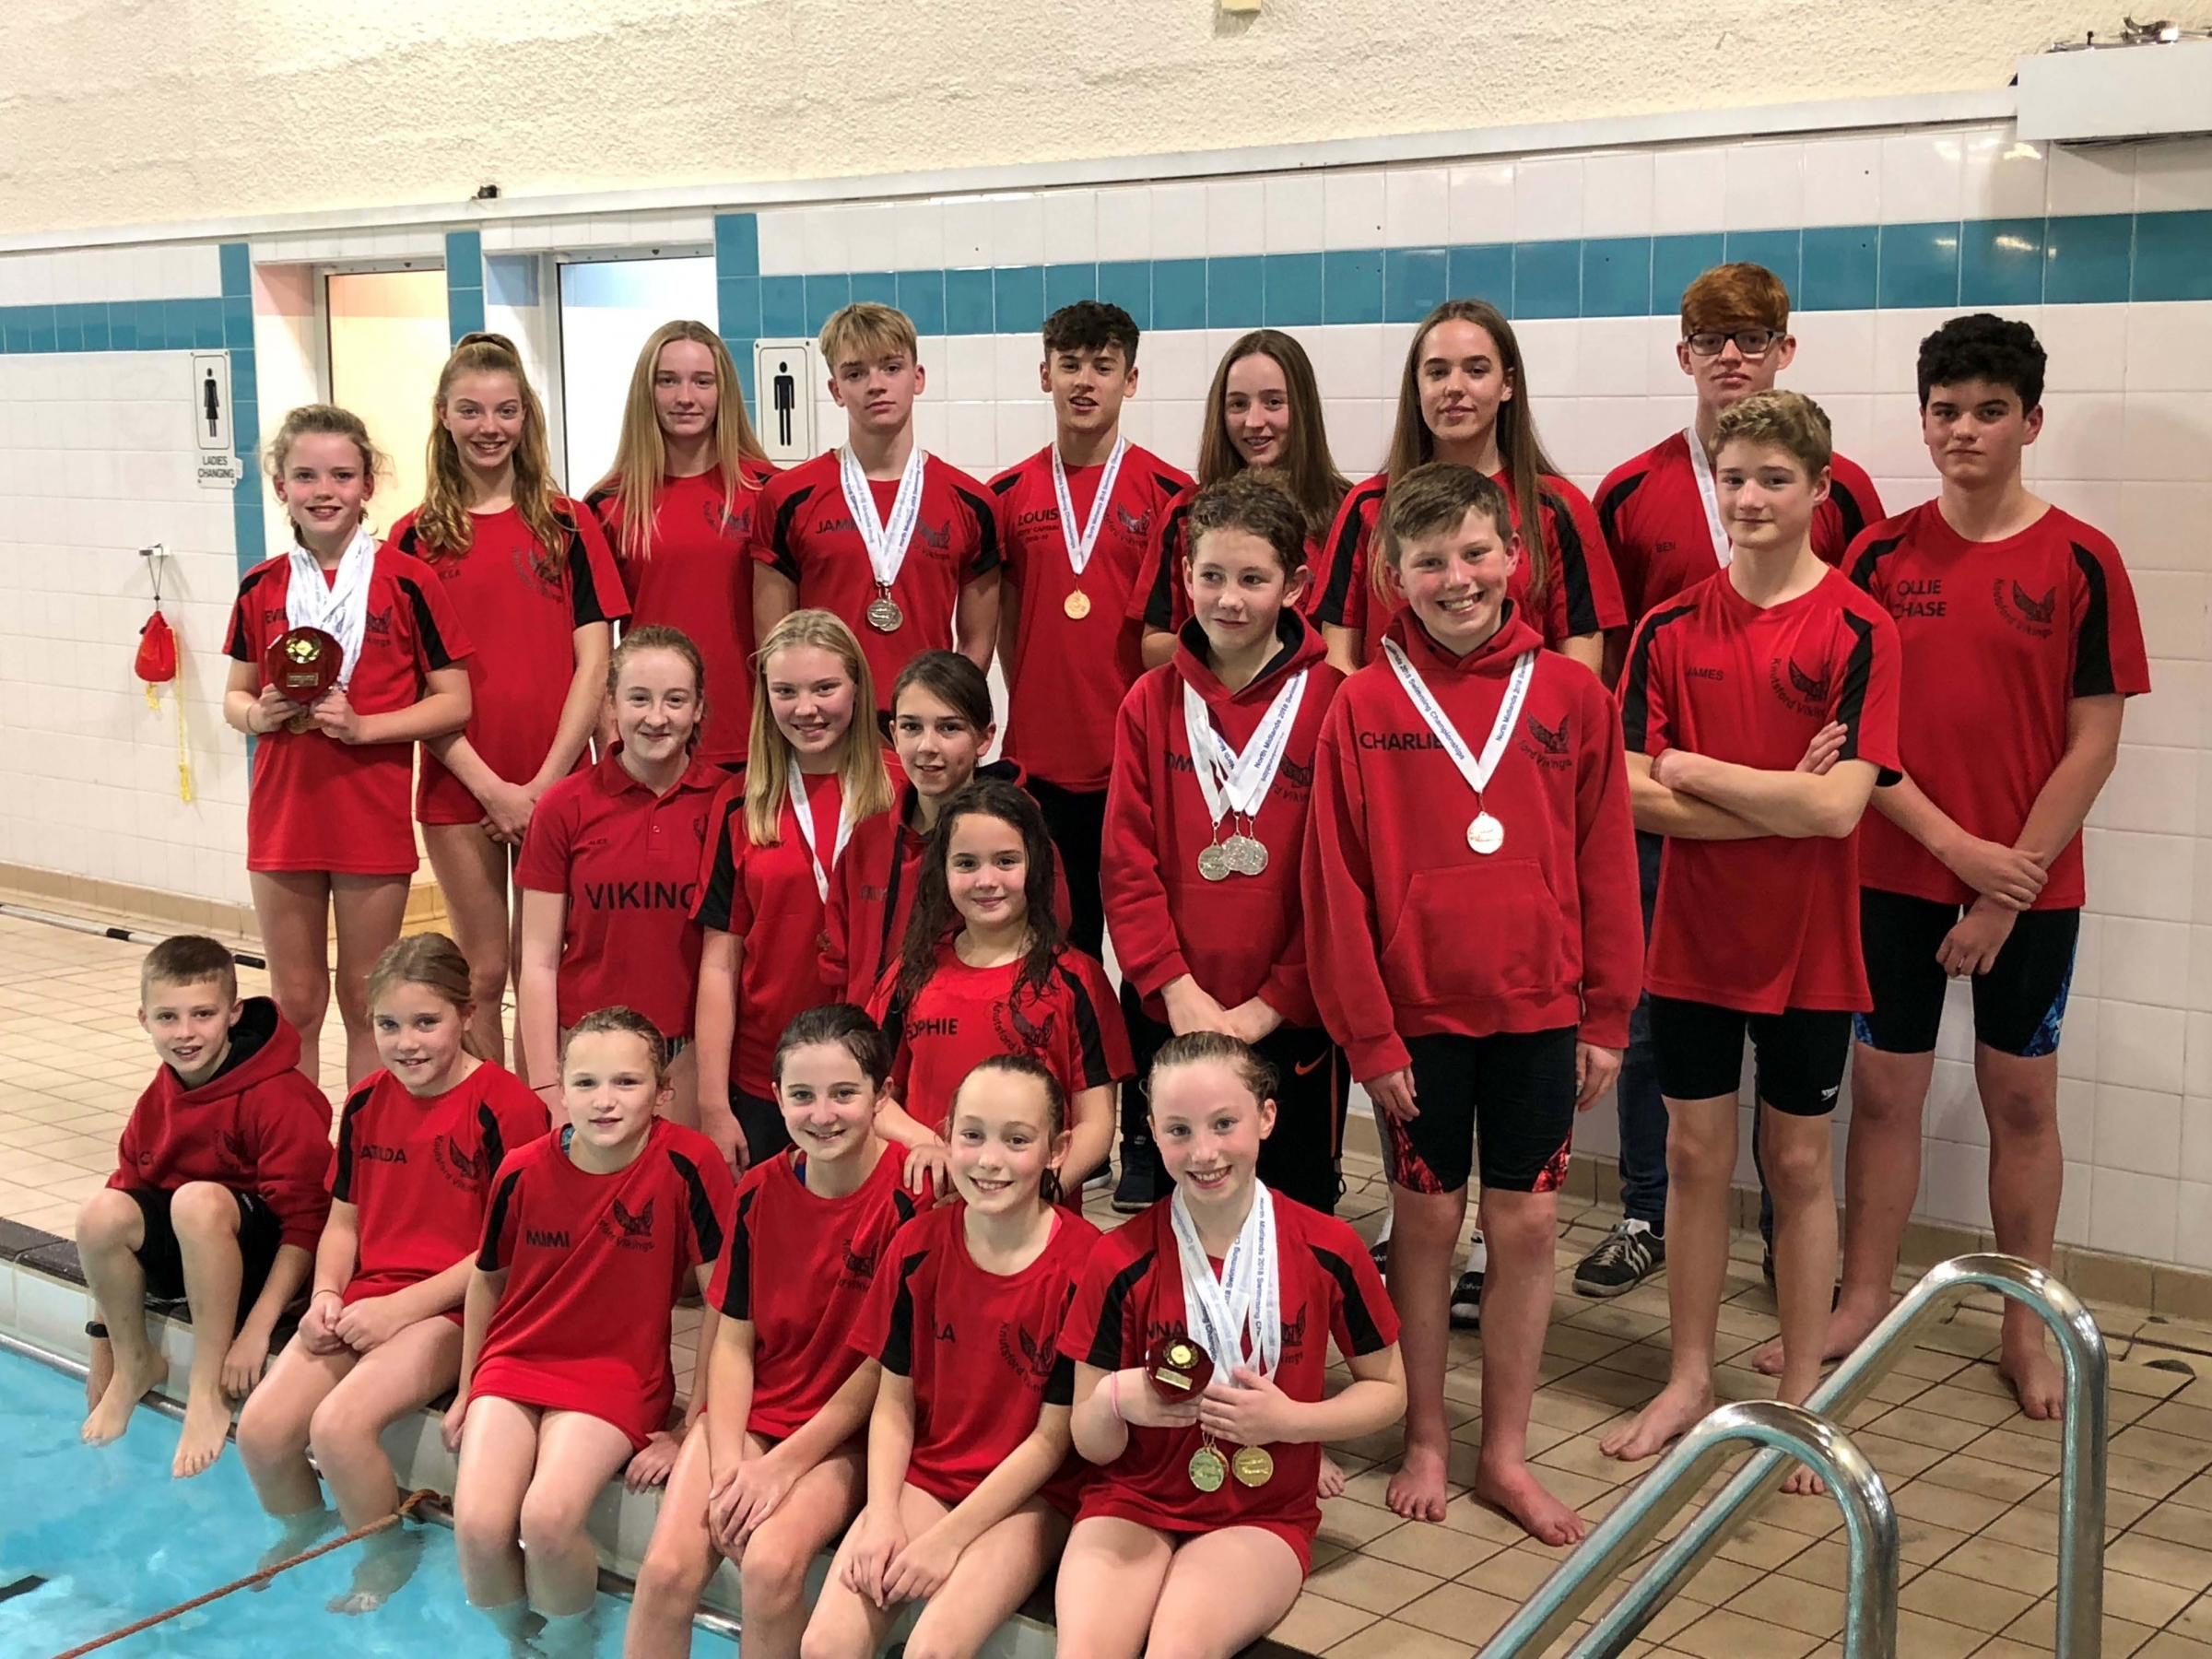 Knutsford Vikings had reason for cheer after collecting a total of 30 medals from races over four days of competition at the North Midlands ASA Championships